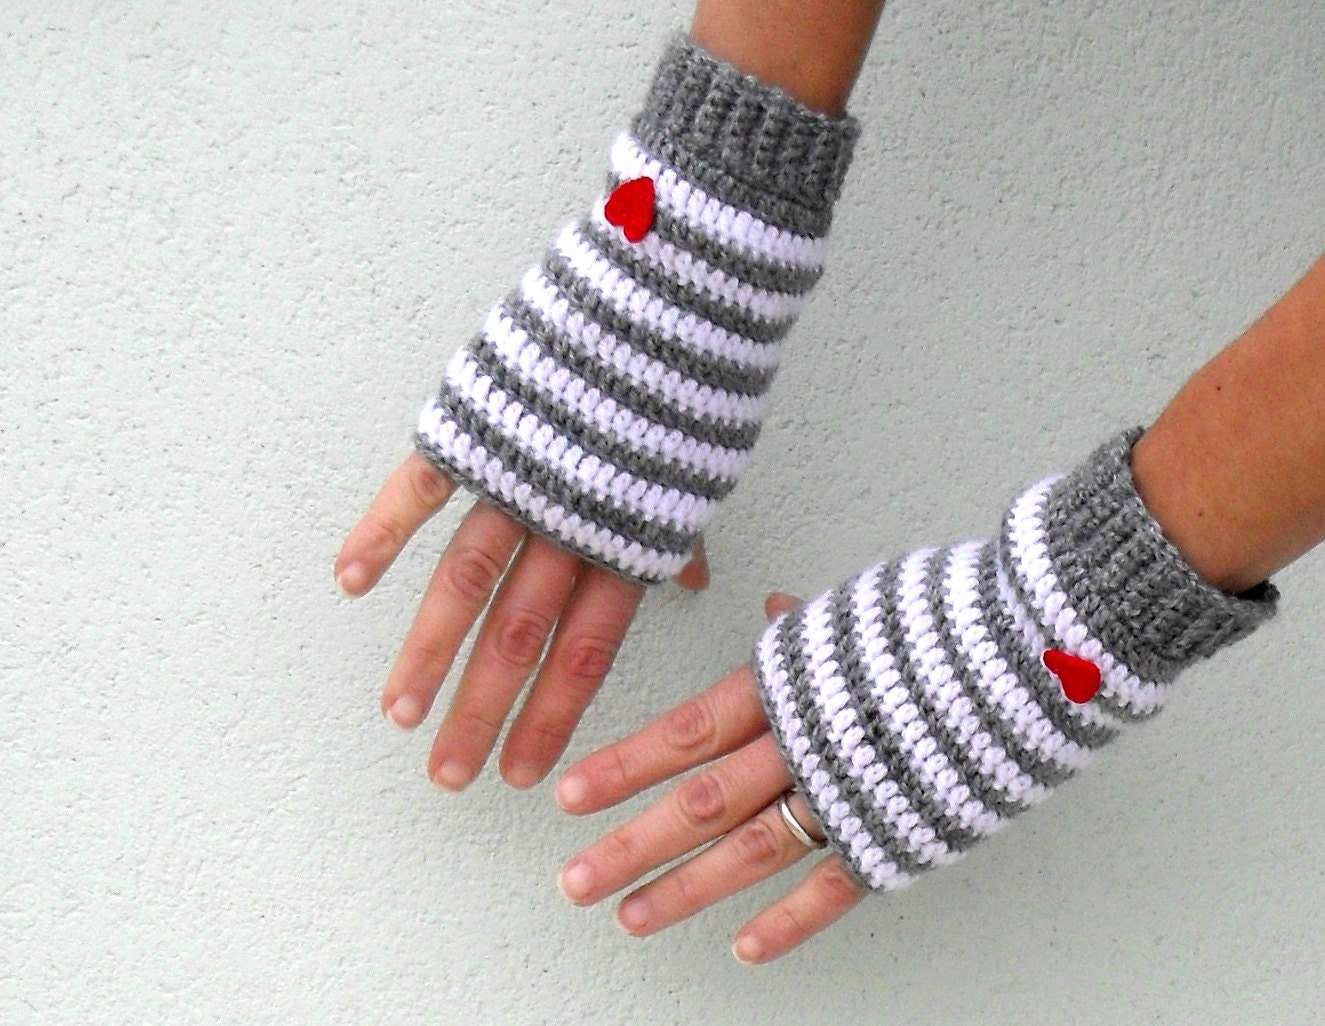 Crocheting Fingerless Gloves : Crochet fingerless gloves mittens PDF Pattern Little by yoghi911